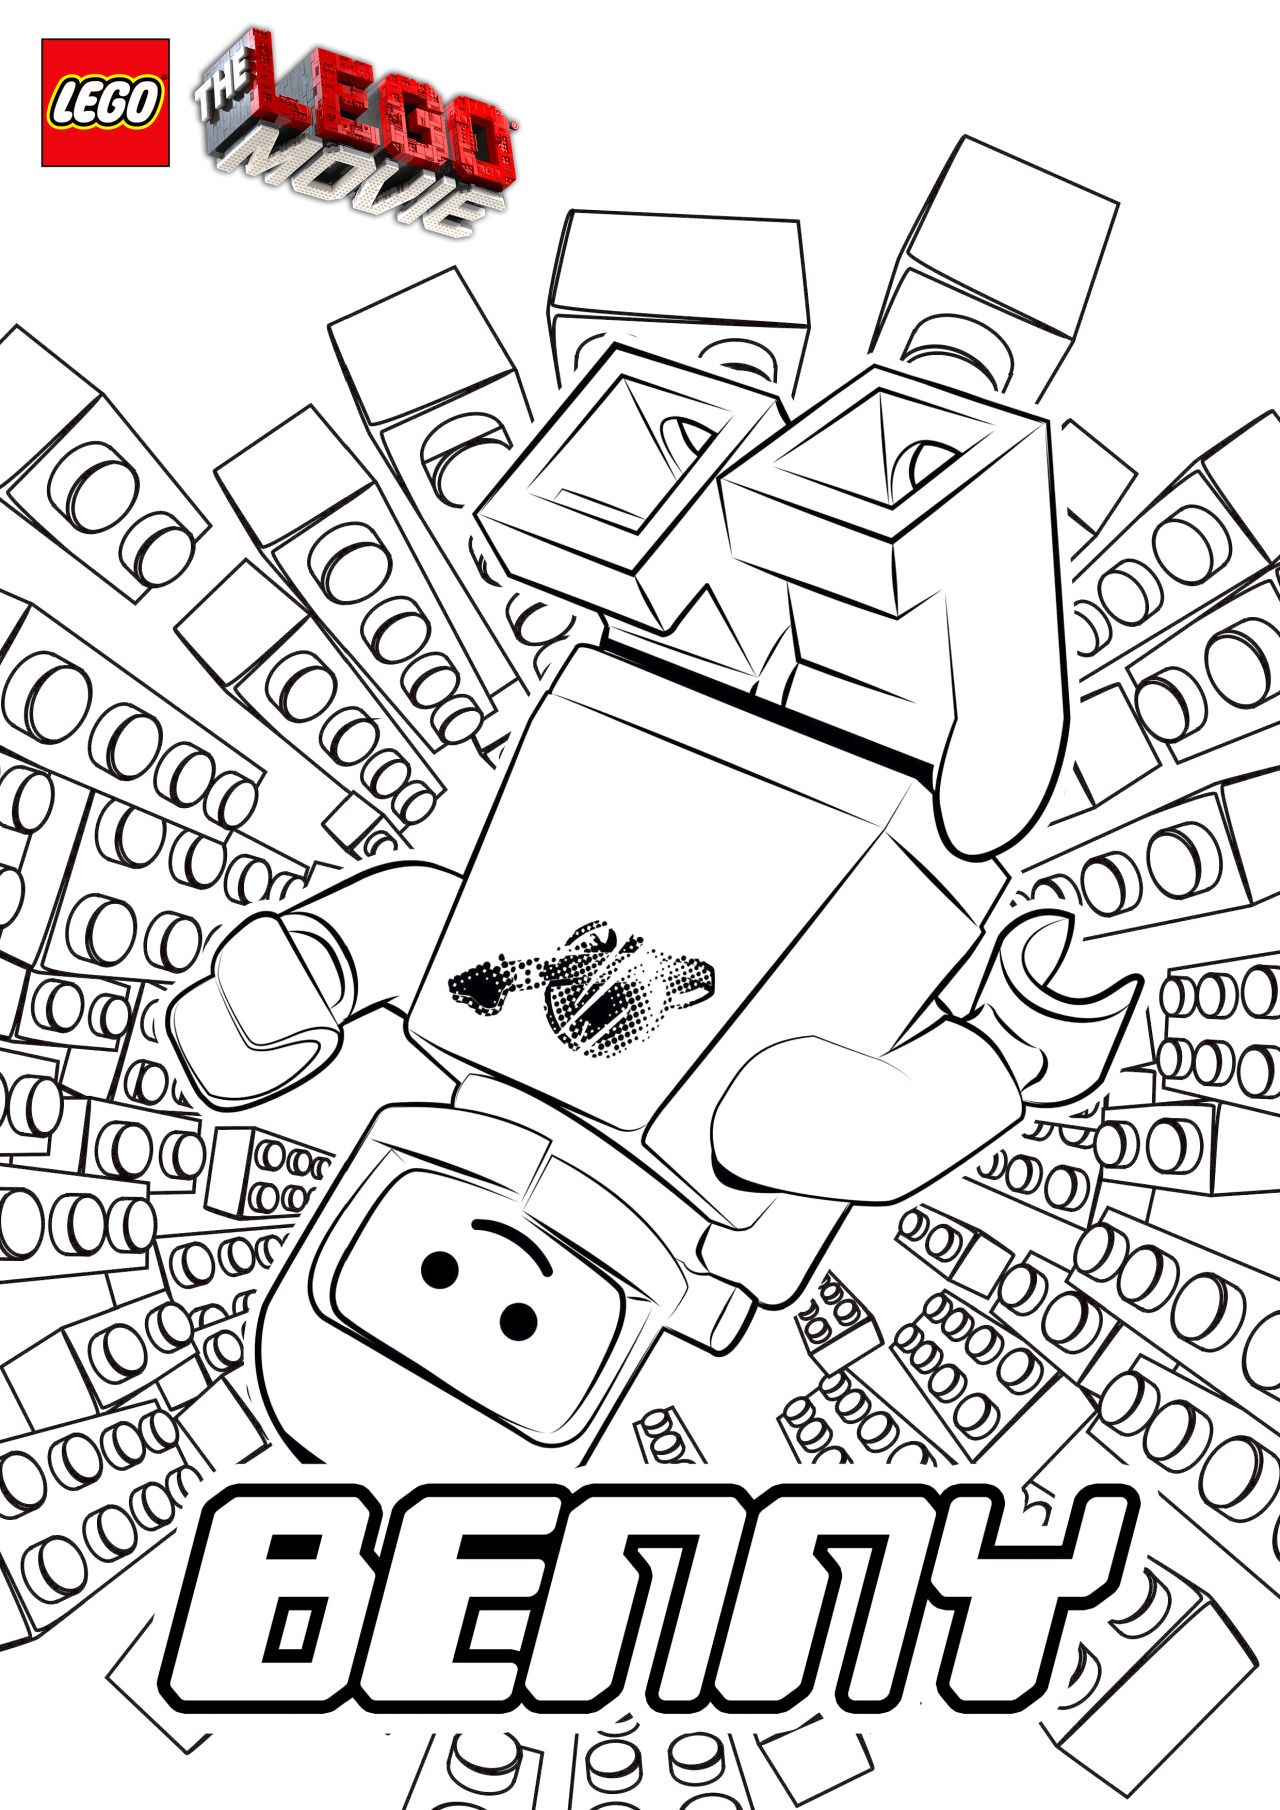 Spaceman Coloring Page! | Space coloring pages, Dinosaur coloring ... | 1810x1280